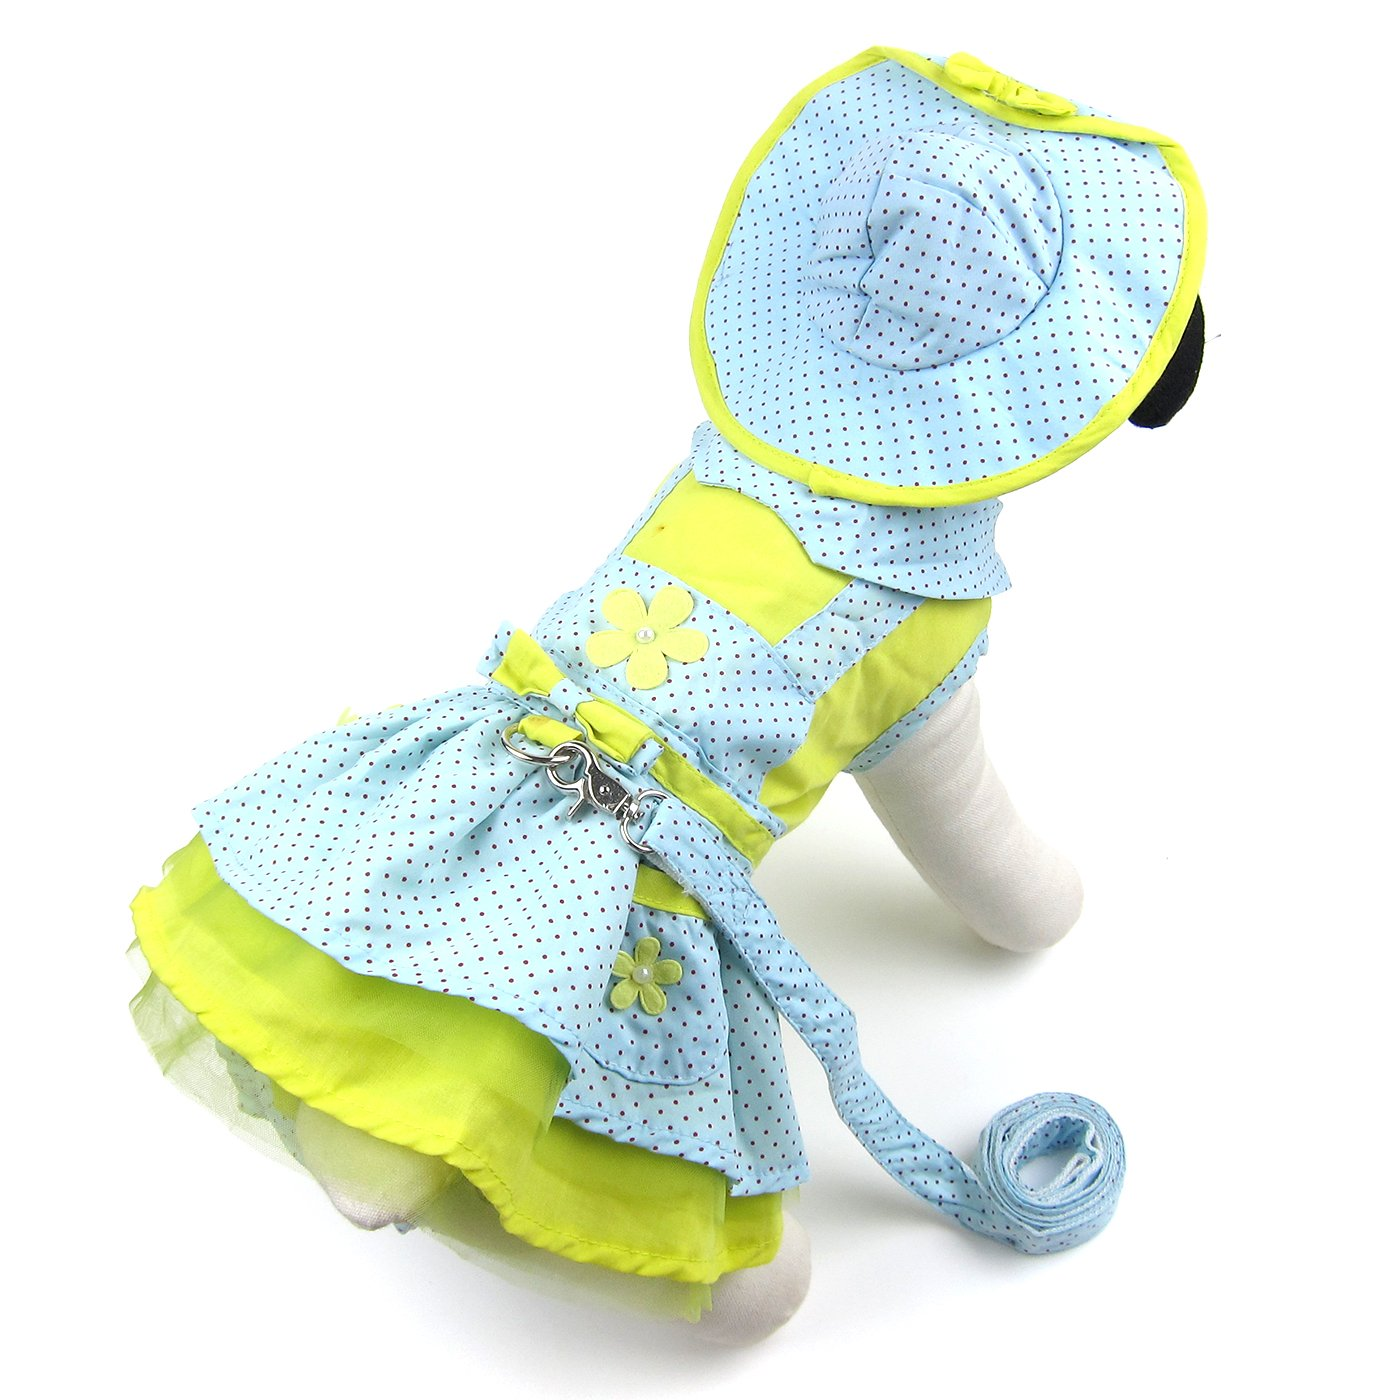 Alfie Pet by Petoga Couture - Penrose Polka Dot Dress with Hat, Matching Panties and Leash Set - Color: Blue, Size: XL